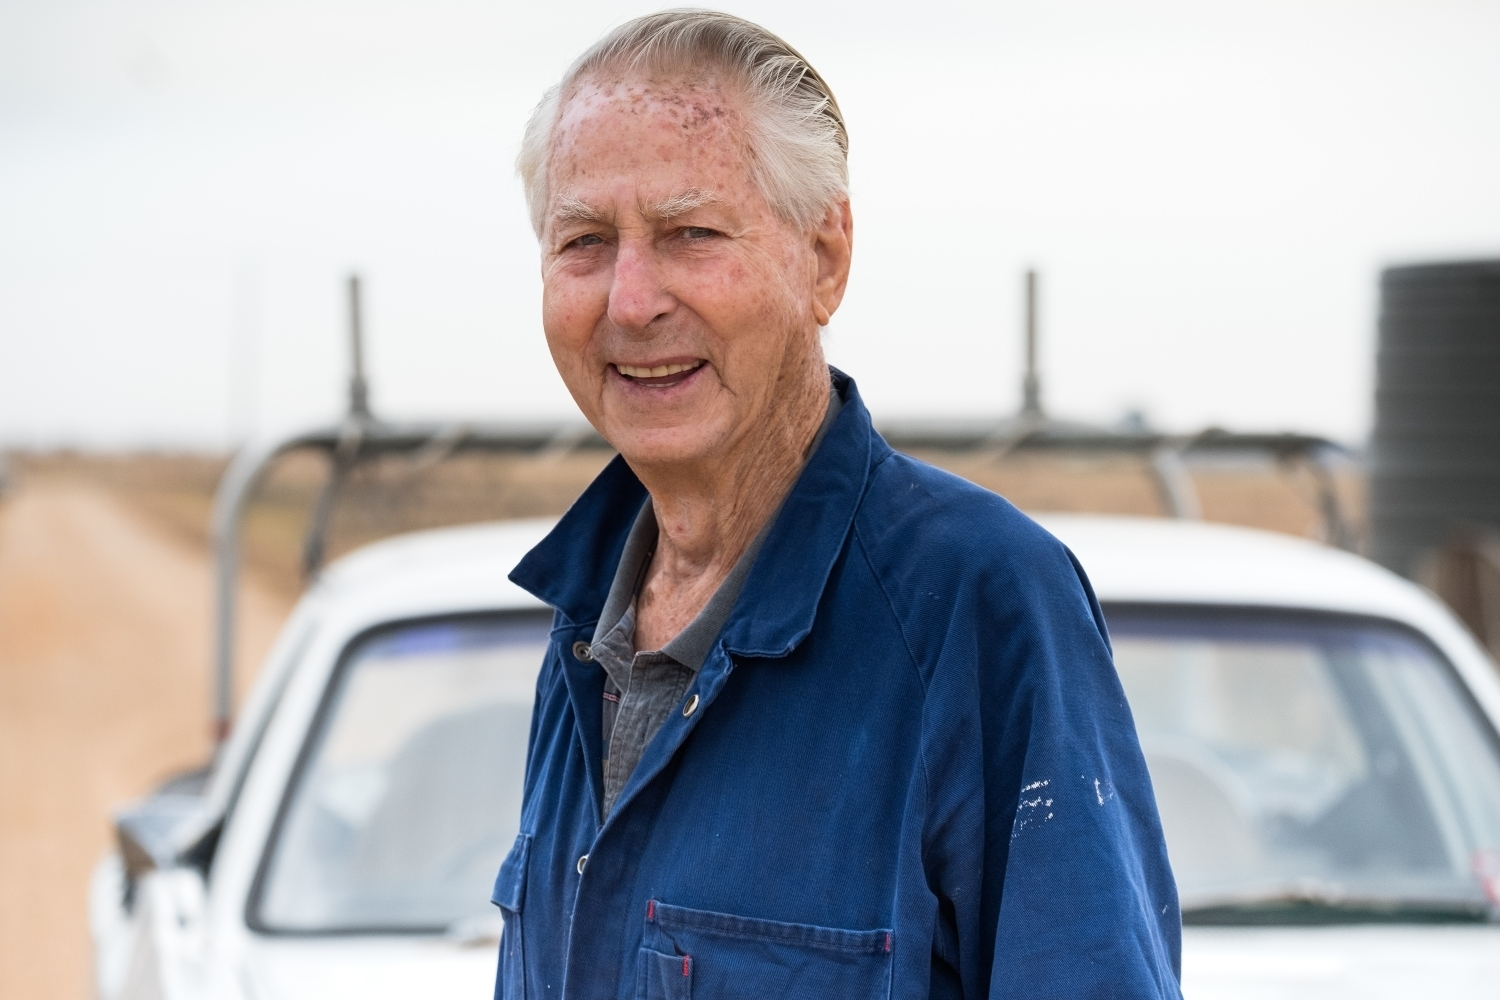 Close up of older man in front of his car in rural area.jpg